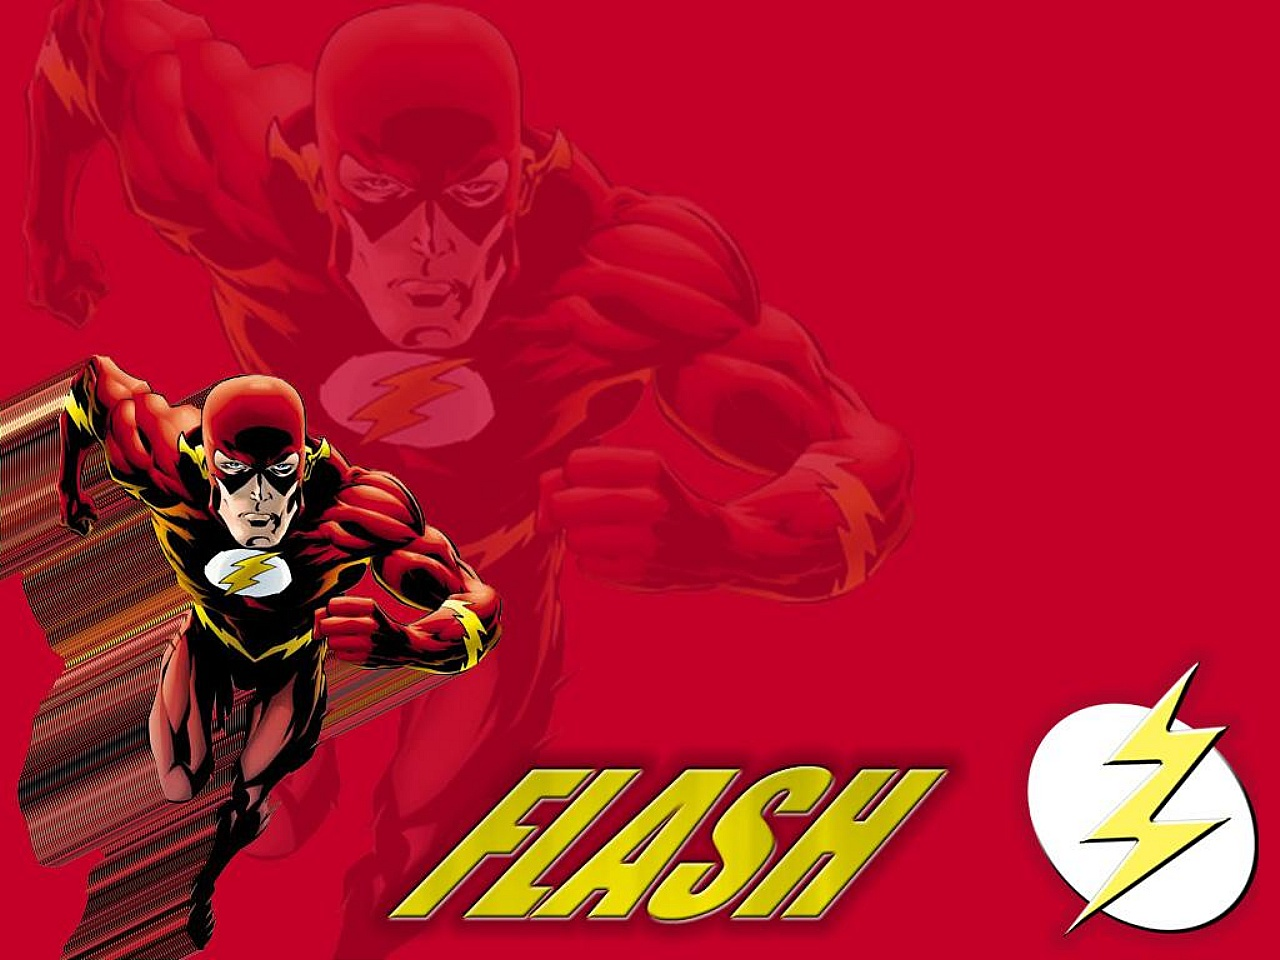 The Flash 3   Comics Photography Desktop Wallpapers 6968 Views 1280x960